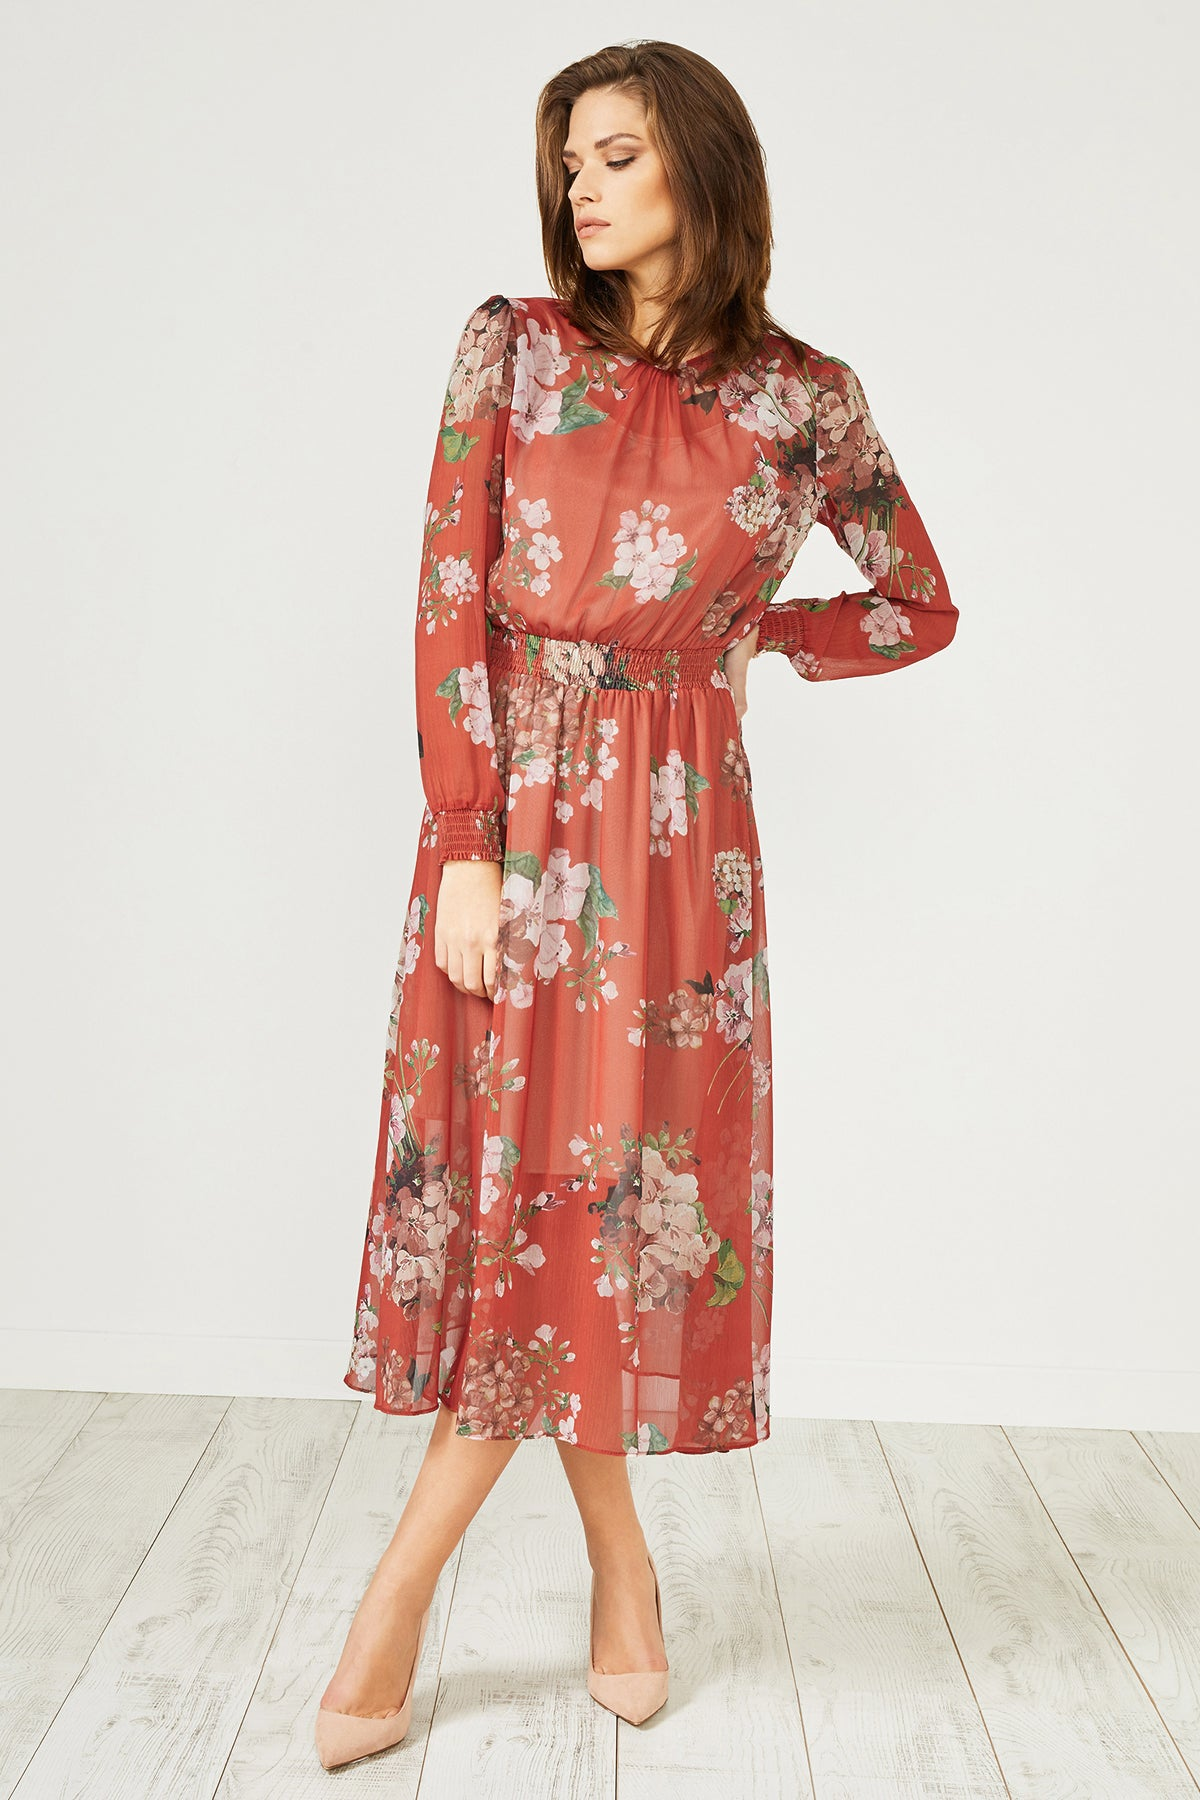 Red Floral Print Long Sleeve Midi Dress